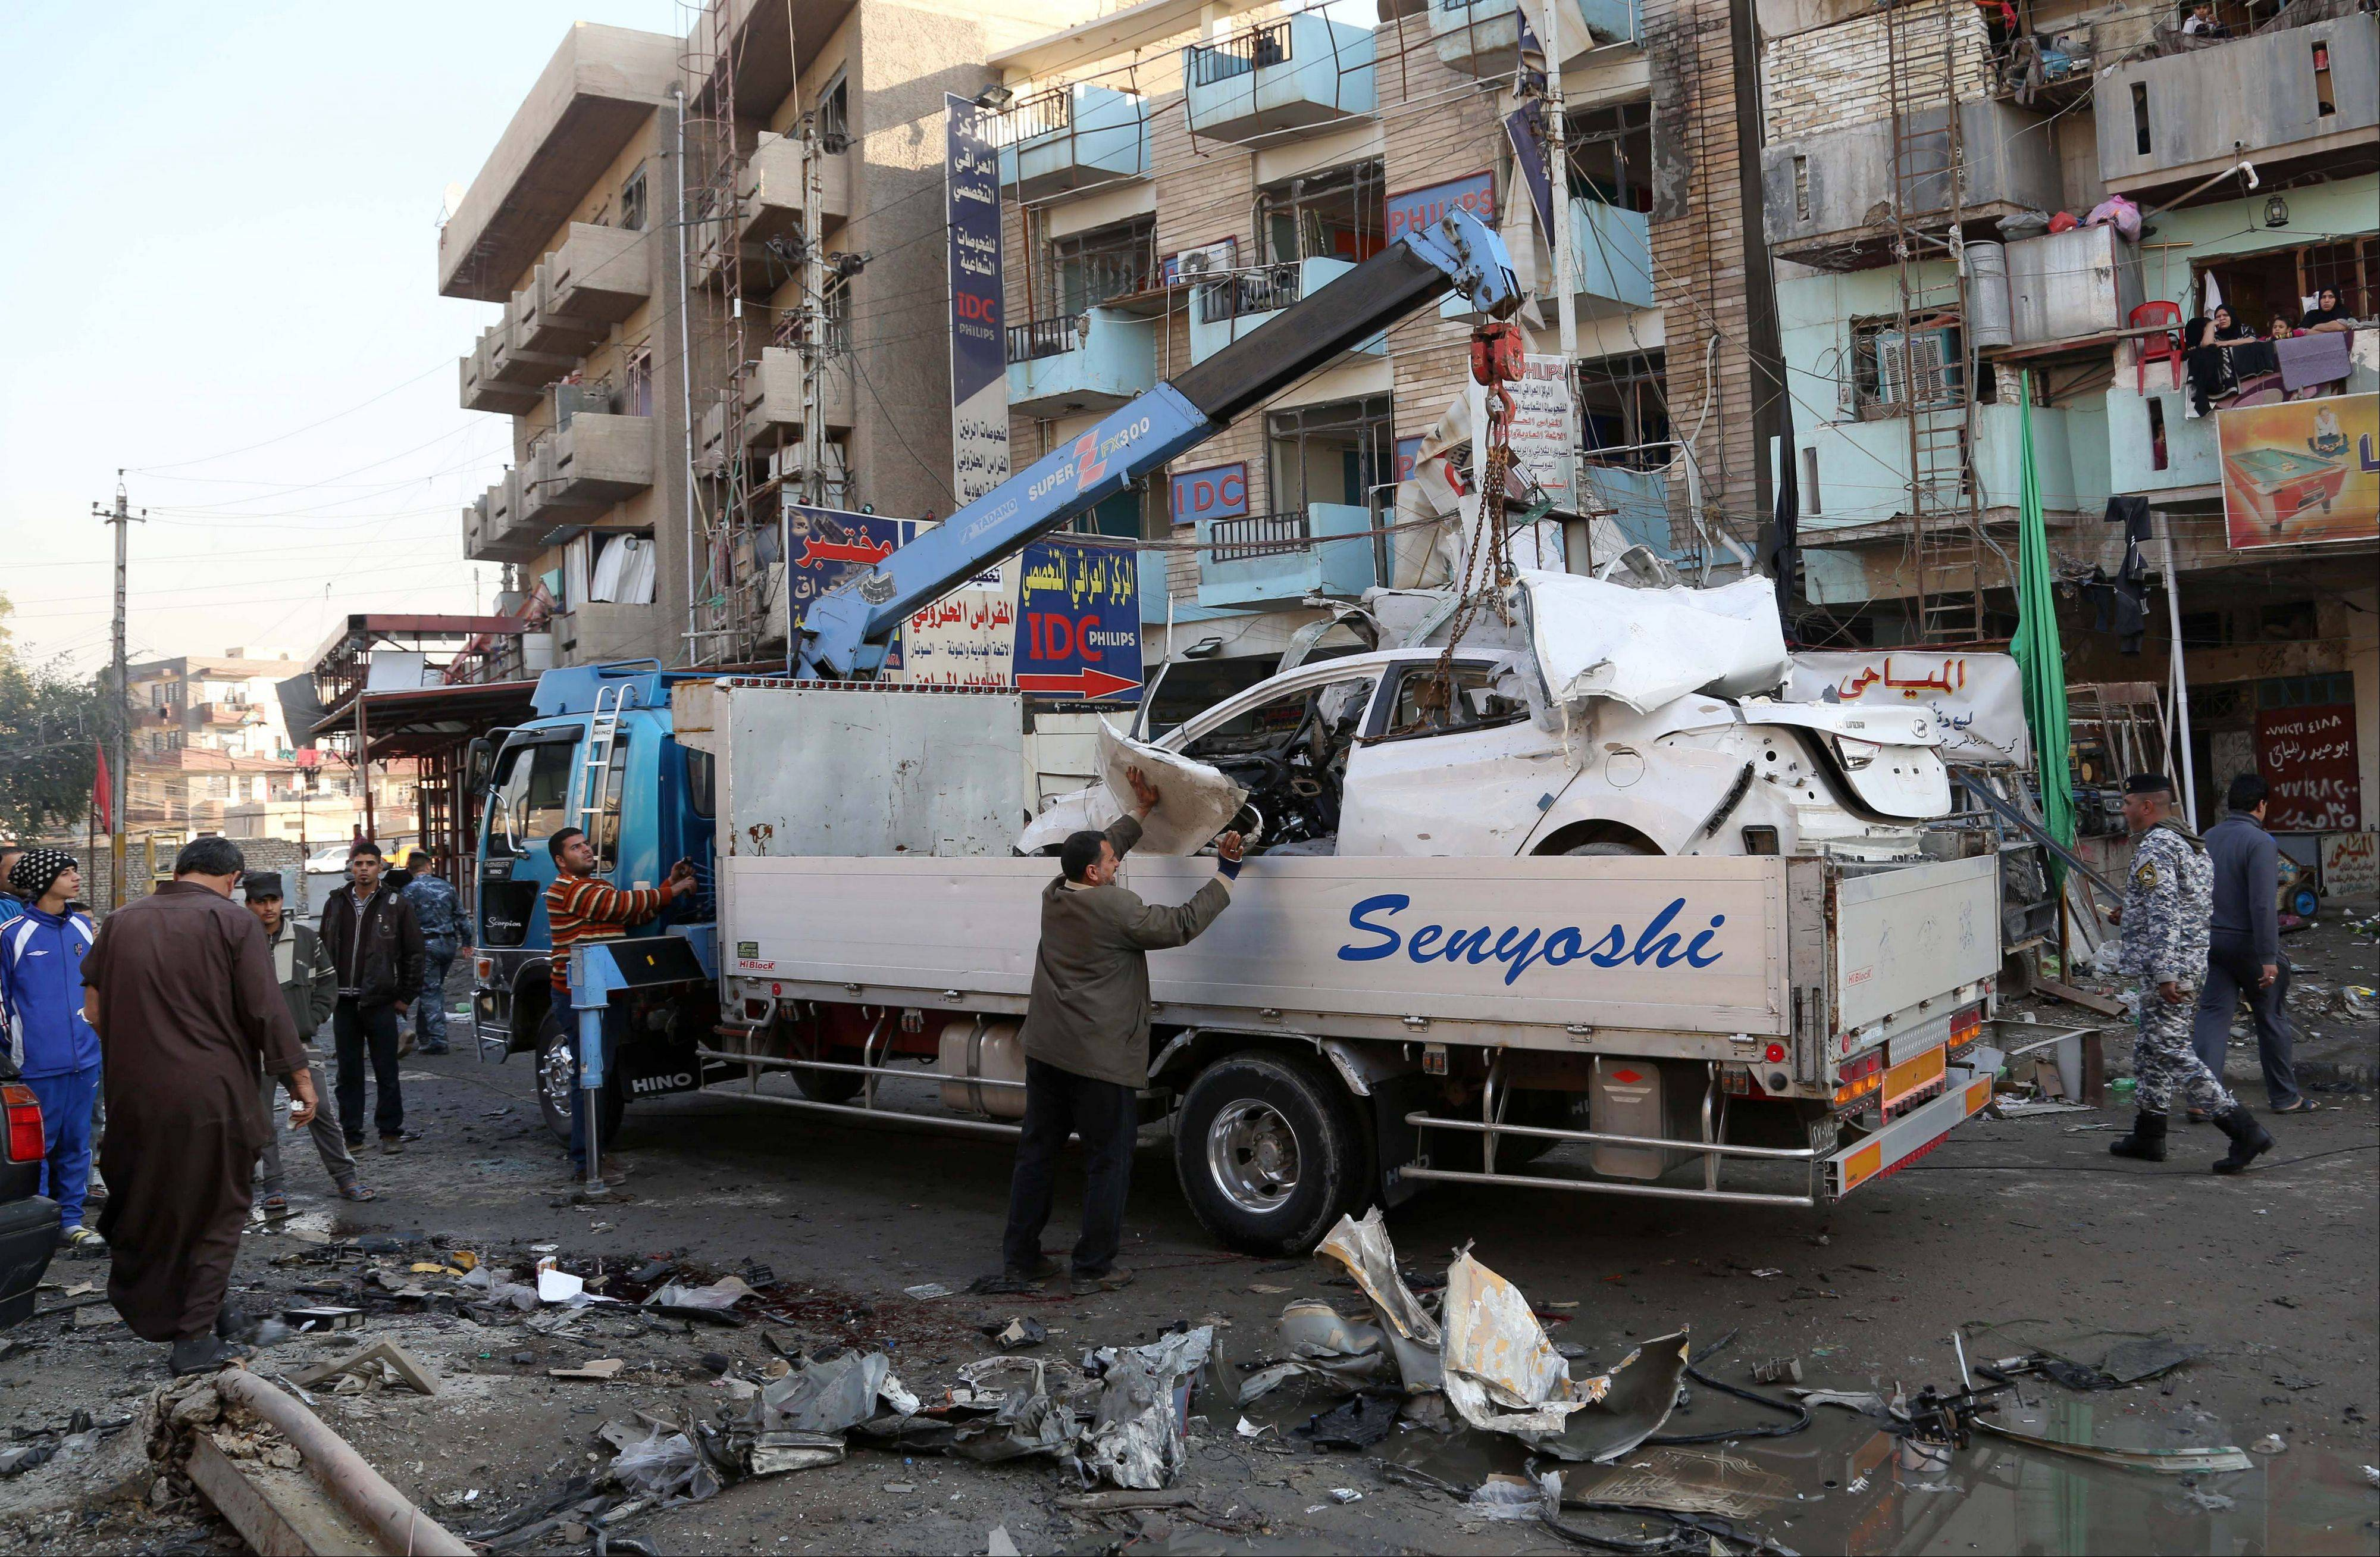 Municipality workers remove debris while civilians inspect the site of a car bomb attack at an outdoor market in Baghdad al-Jadidah district, Iraq, Monday.